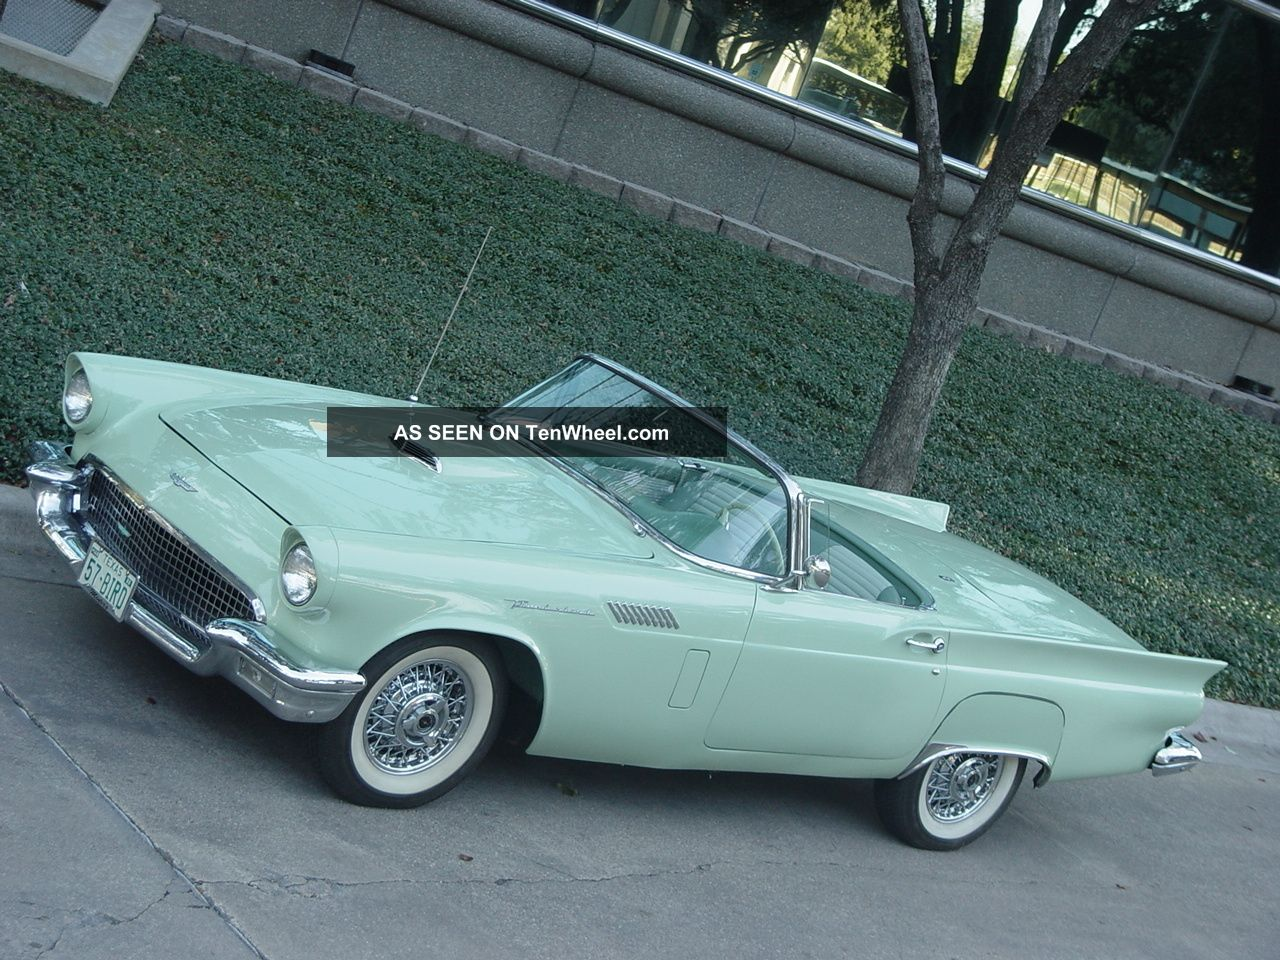 1957 Ford Thunderbird Air Conditioning - Cooling Pkg Ford Fact.  Invoice - Not 1956 Thunderbird photo